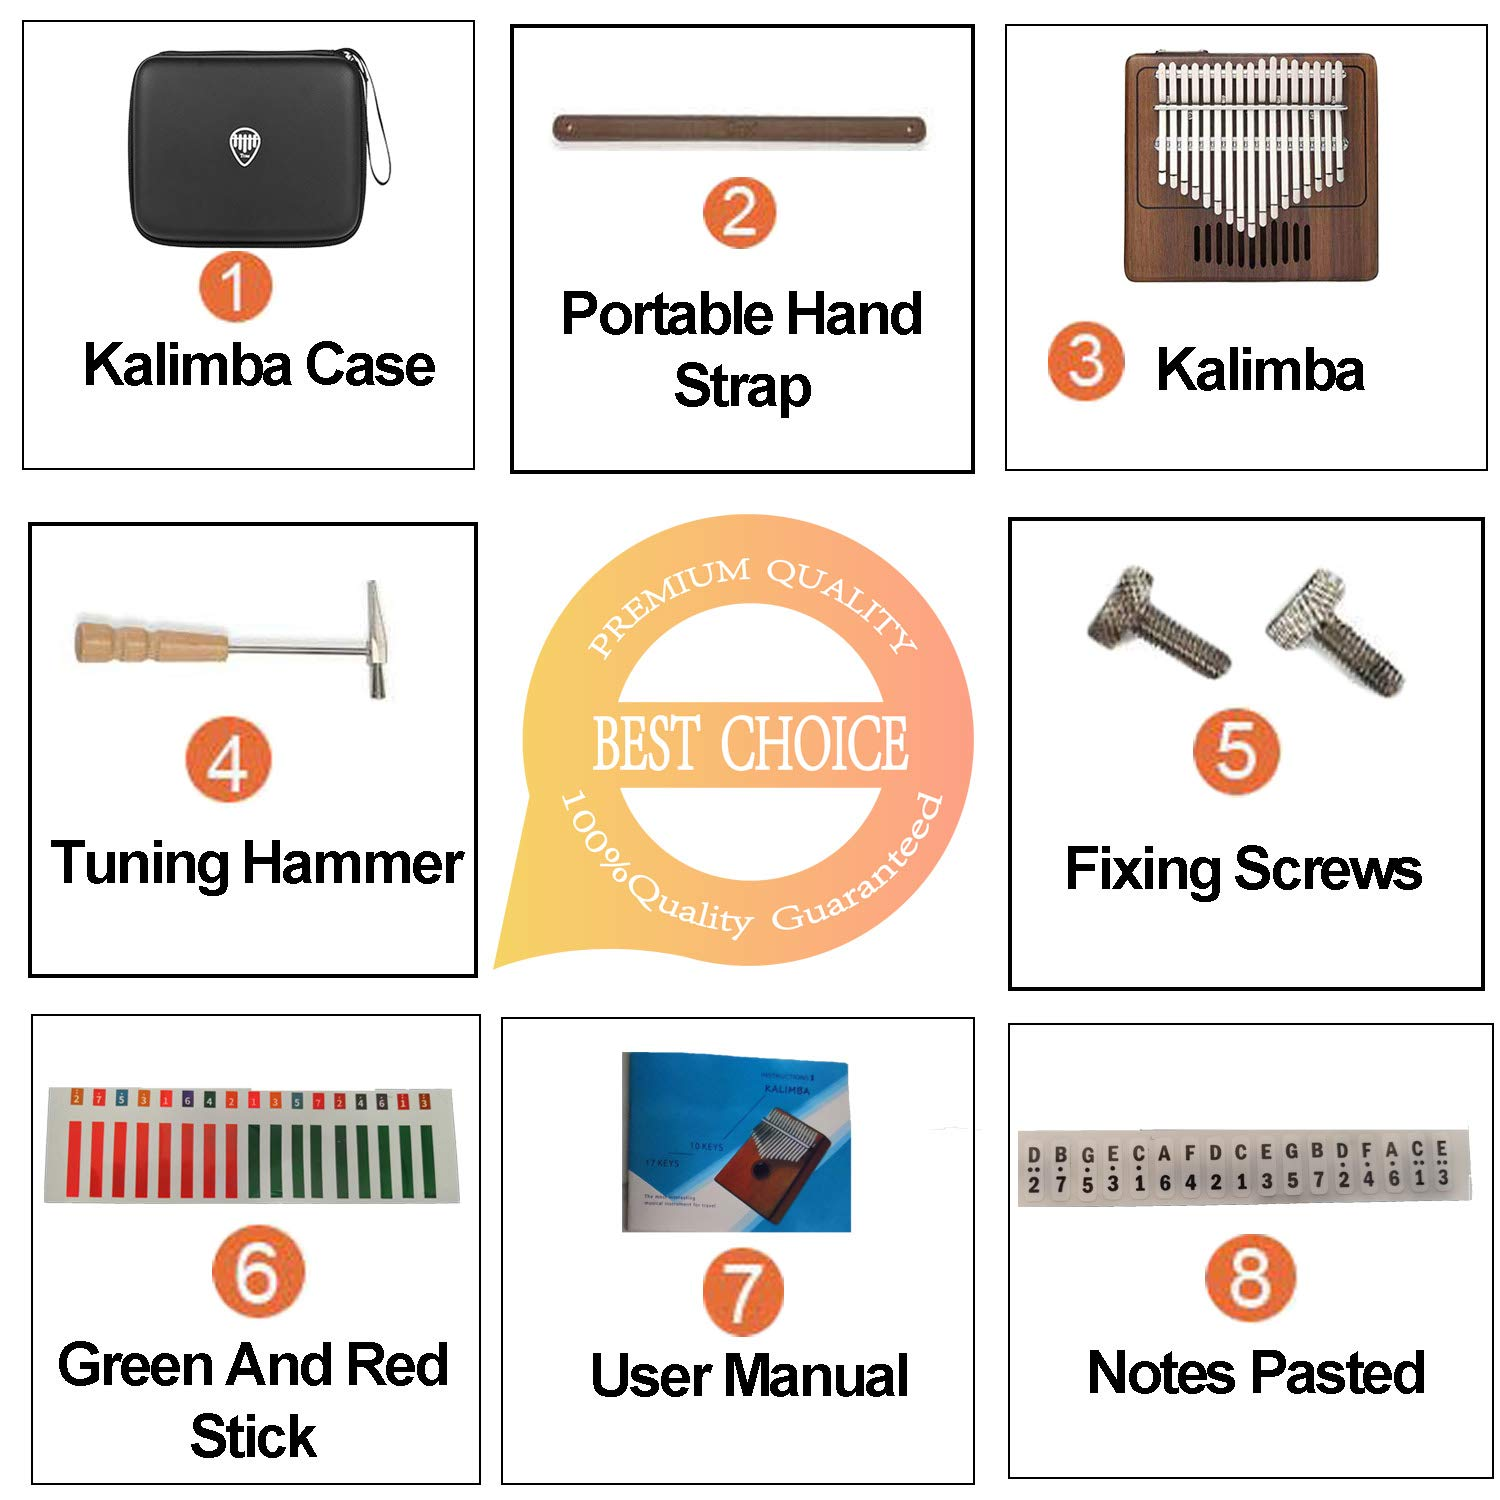 TOM Kalimba, 17 Key Finger Piano with EVA High-performance protective Case, Tune Hammer And Study Instruction 17 Tone Thumb Mbira for Kids Adult Beginners Professionals by TOM (Image #7)